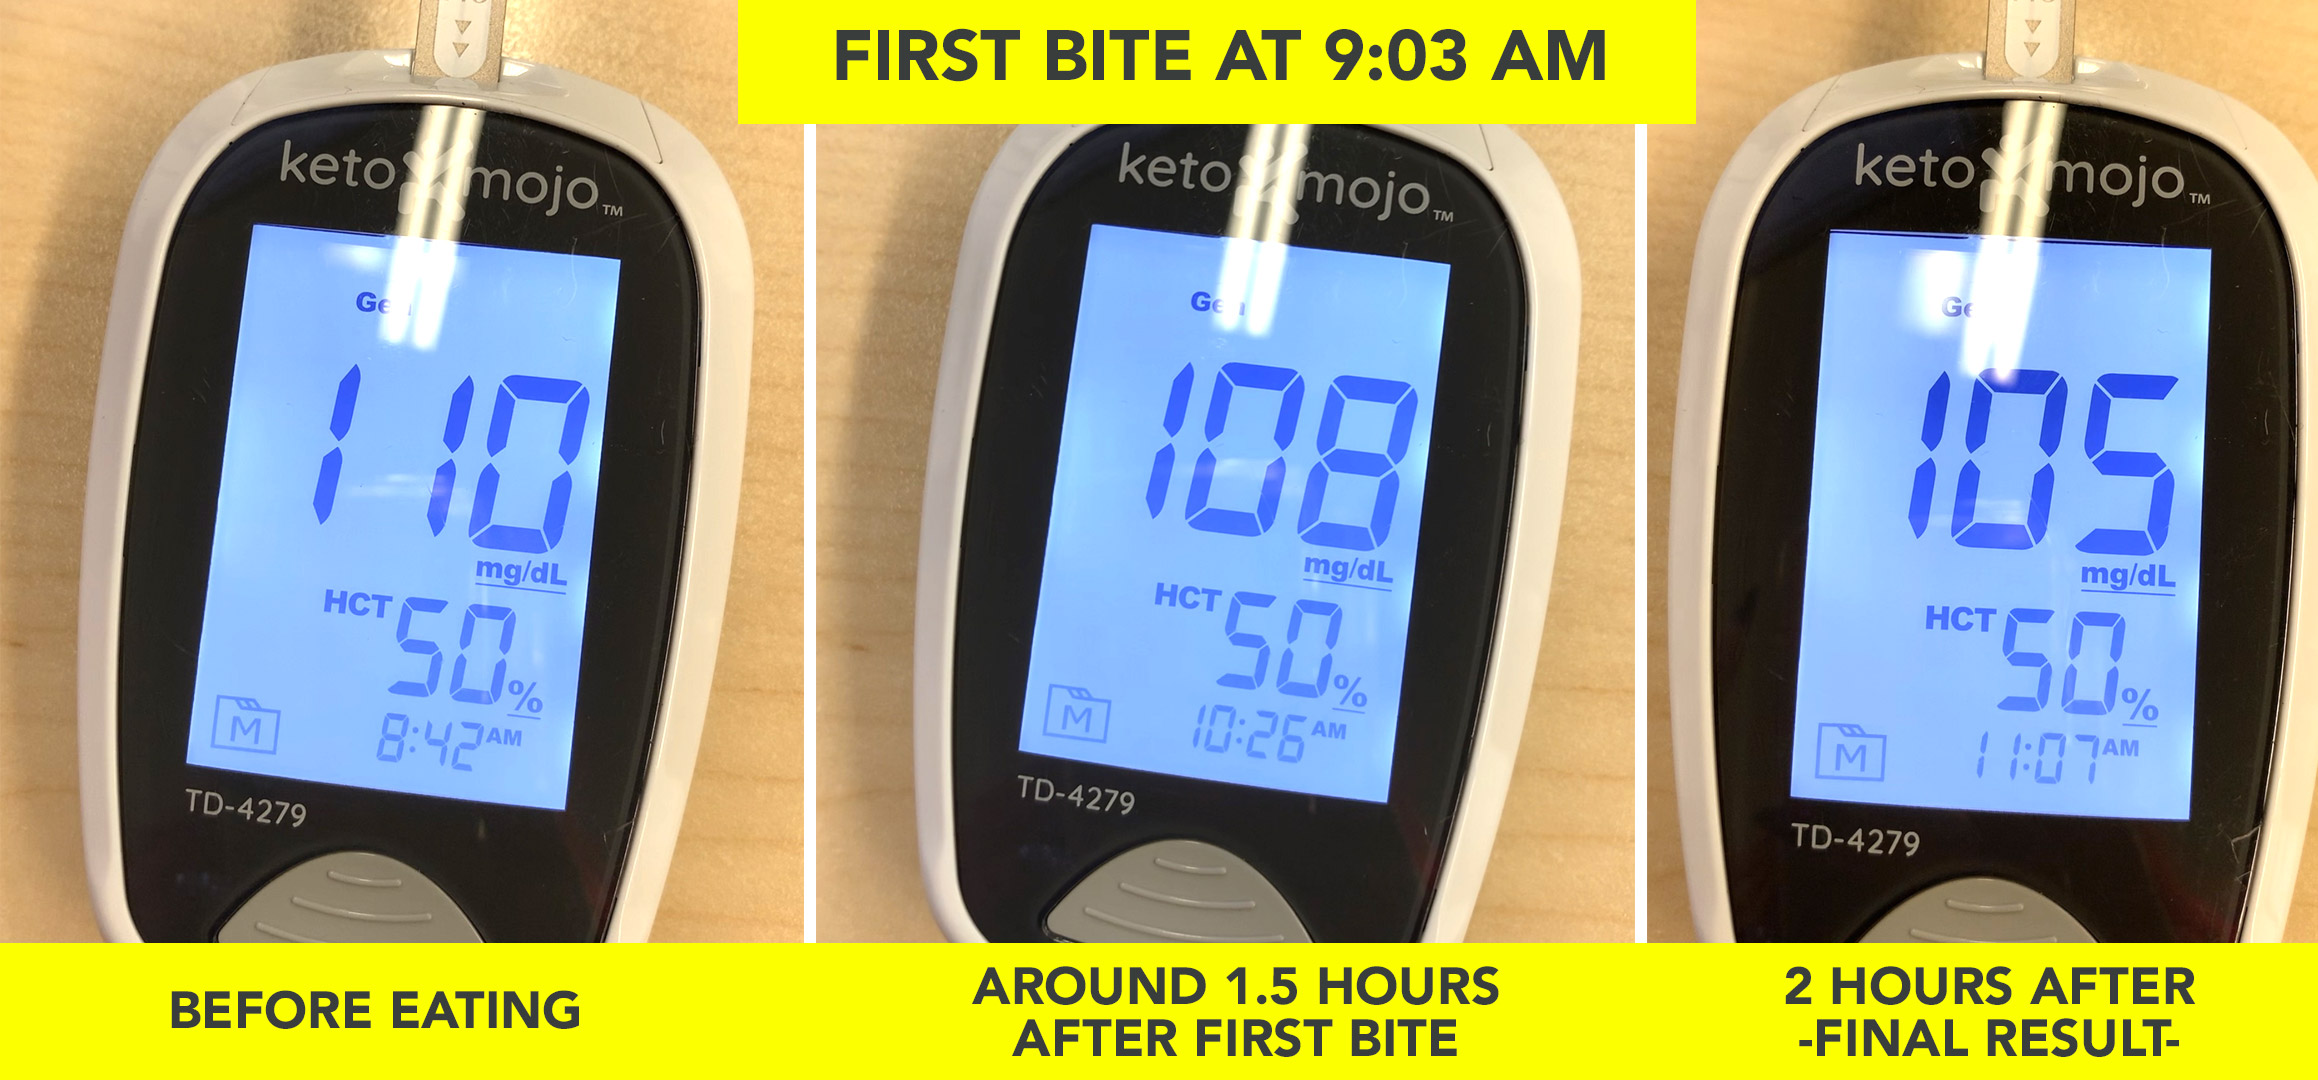 KETOFY.ME - KNOW FOODS GLUCOSE AND KETONE TEST RESULTS